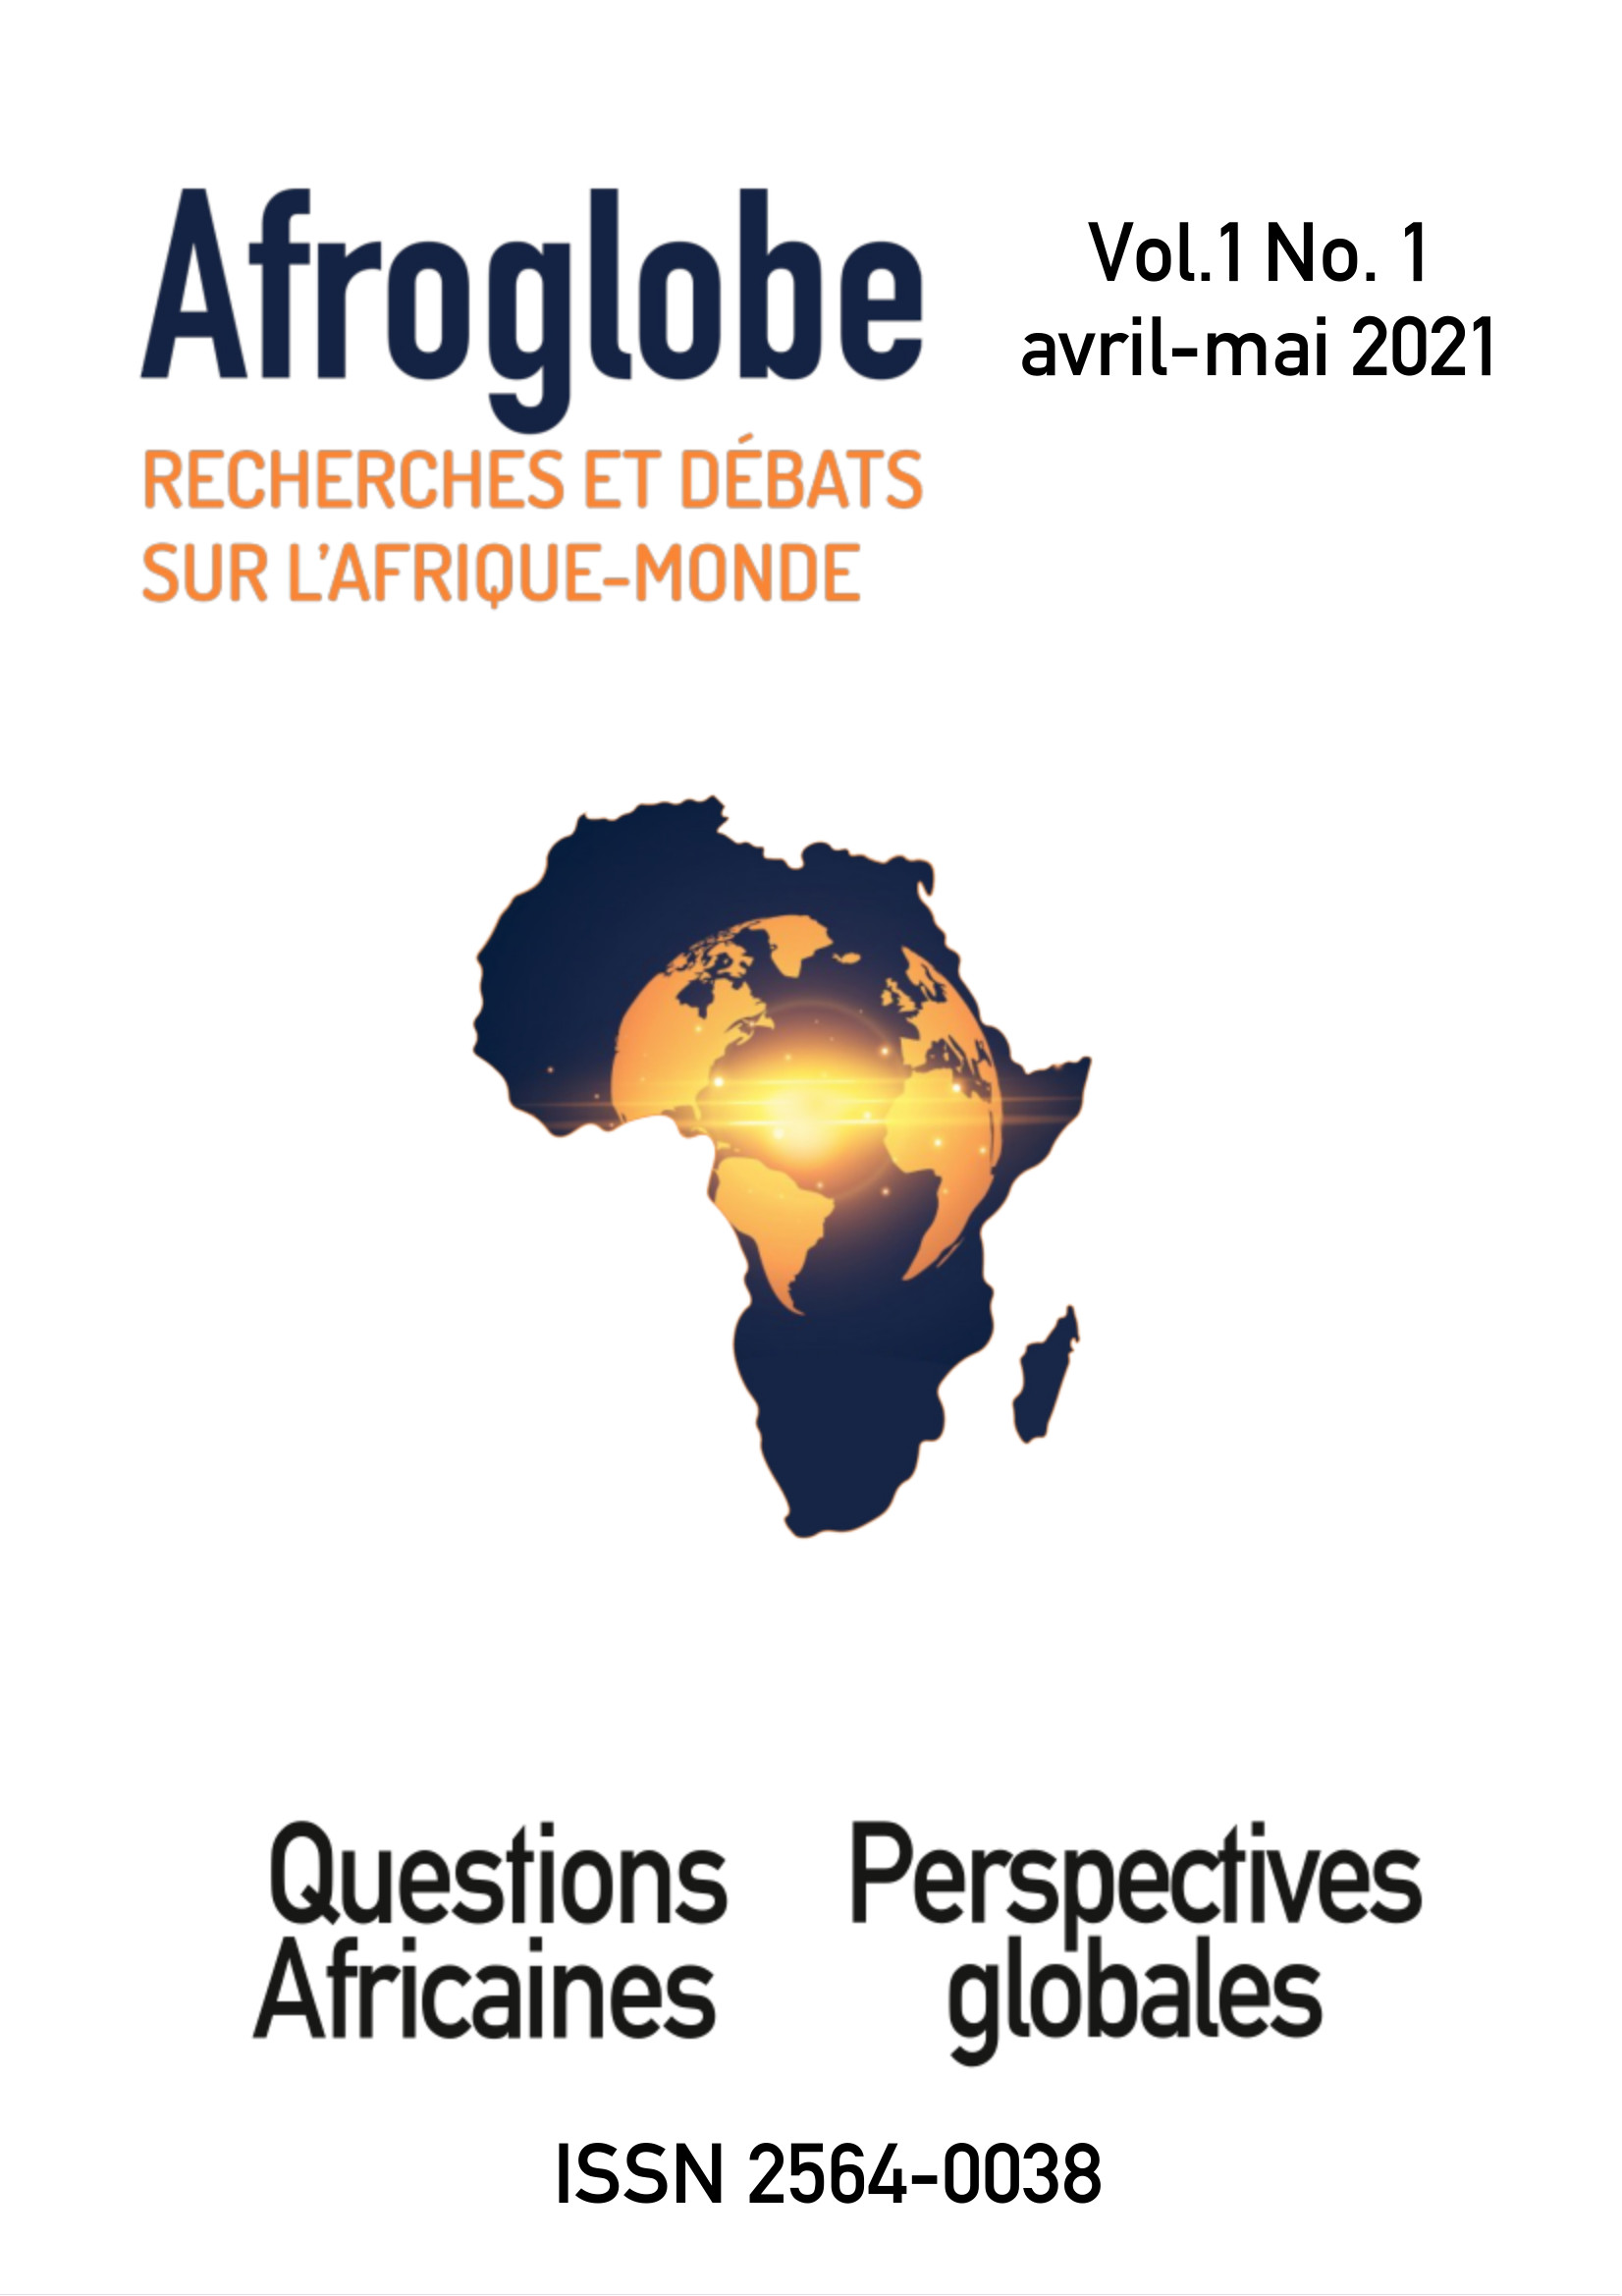 Afficher Vol. 1 No. 1 Avril/Mai (2021): Questions africaines-Perspective globale